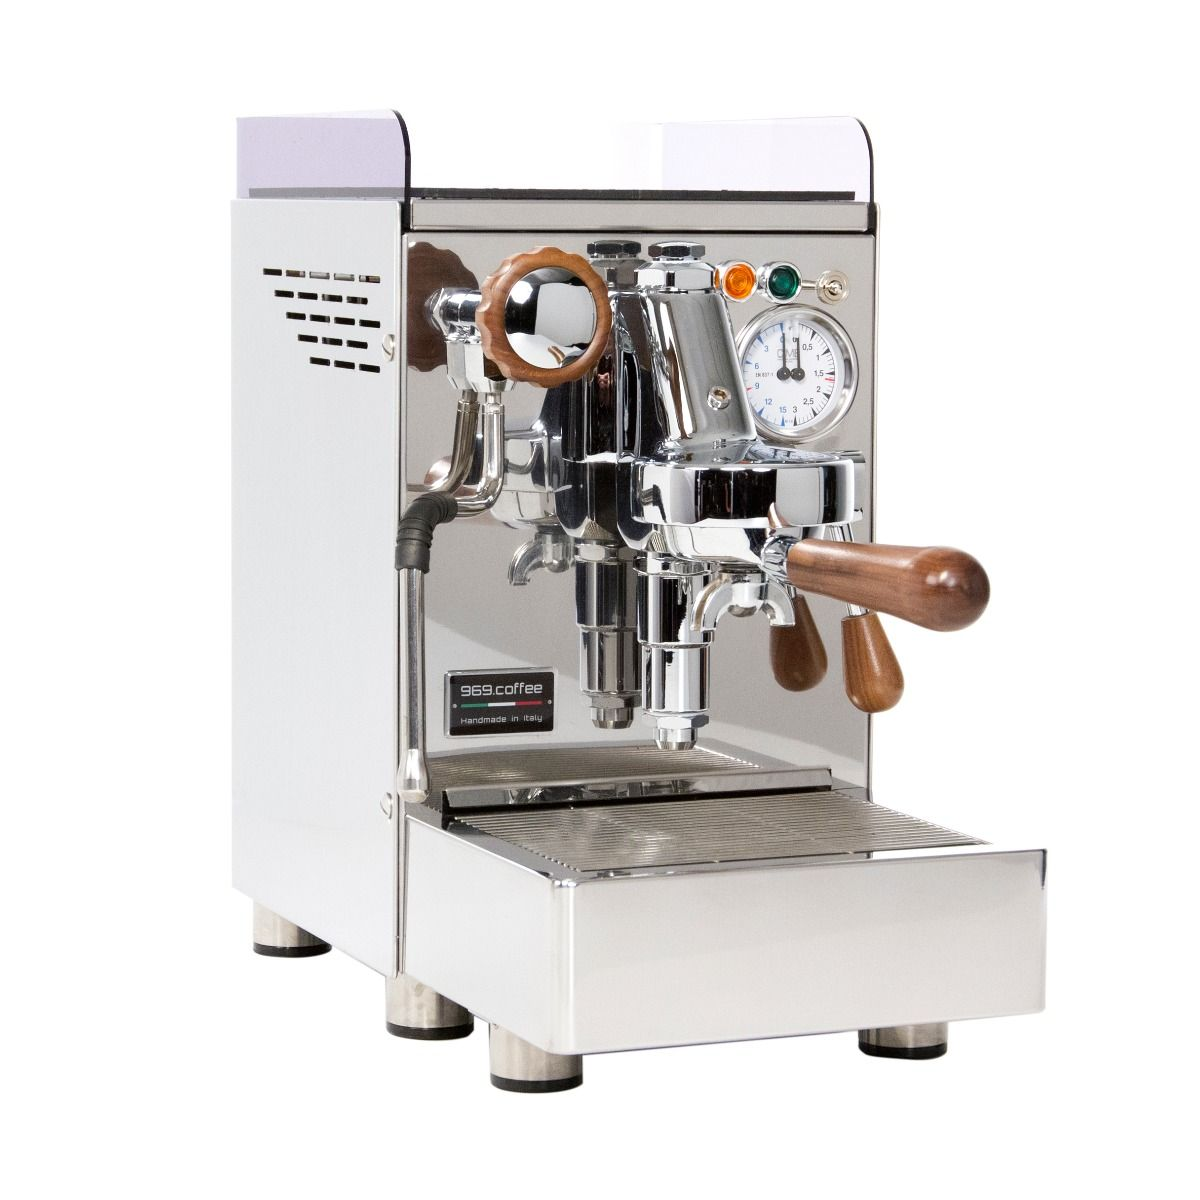 Coffee machine 969.coffee Elba2